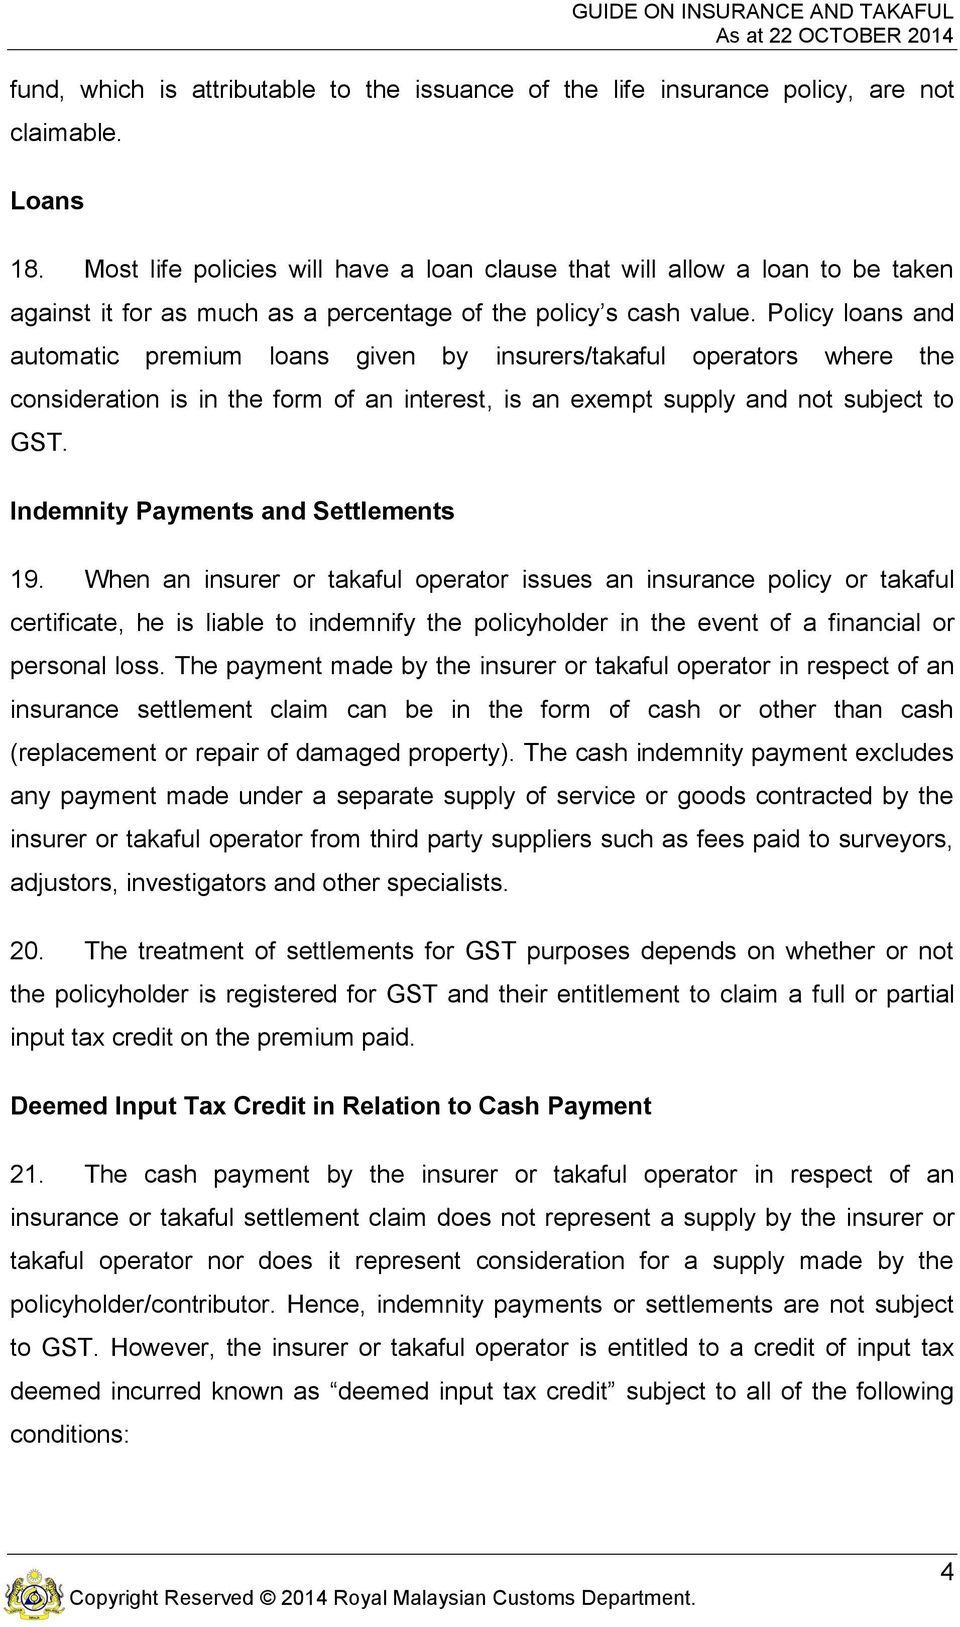 Policy loans and automatic premium loans given by insurers/takaful operators where the consideration is in the form of an interest, is an exempt supply and not subject to GST.